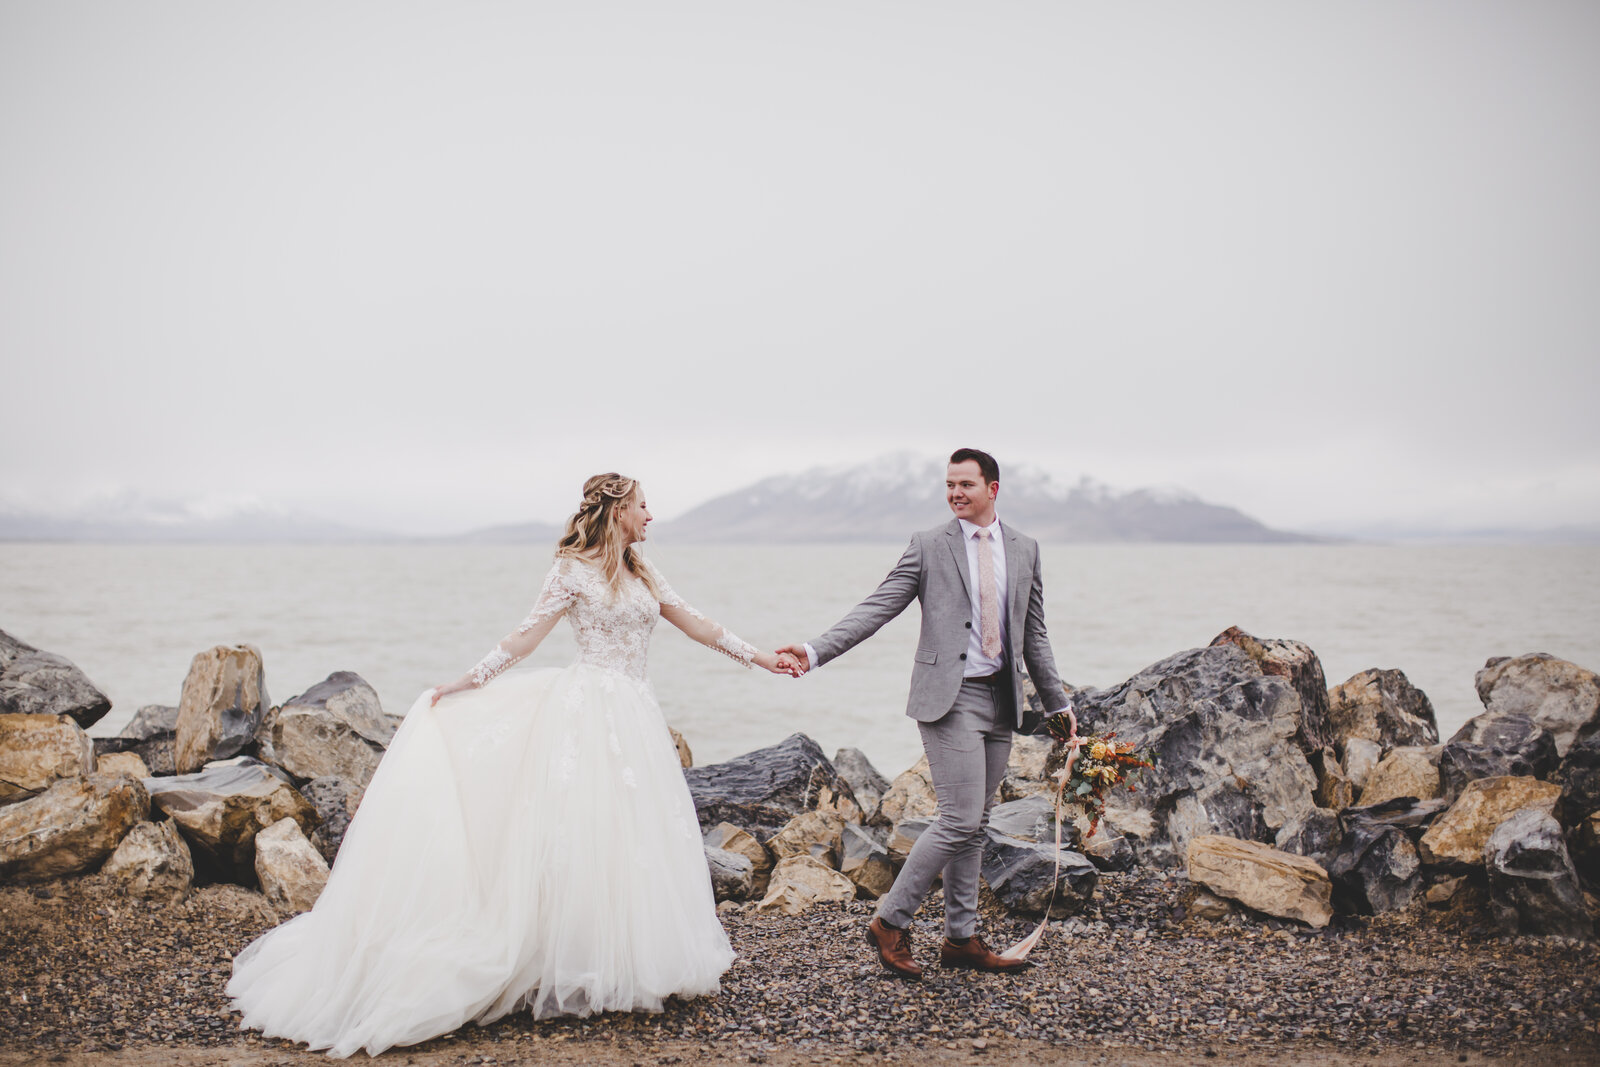 Breea & Jake - Utah Styled Shoot (156 of 304)